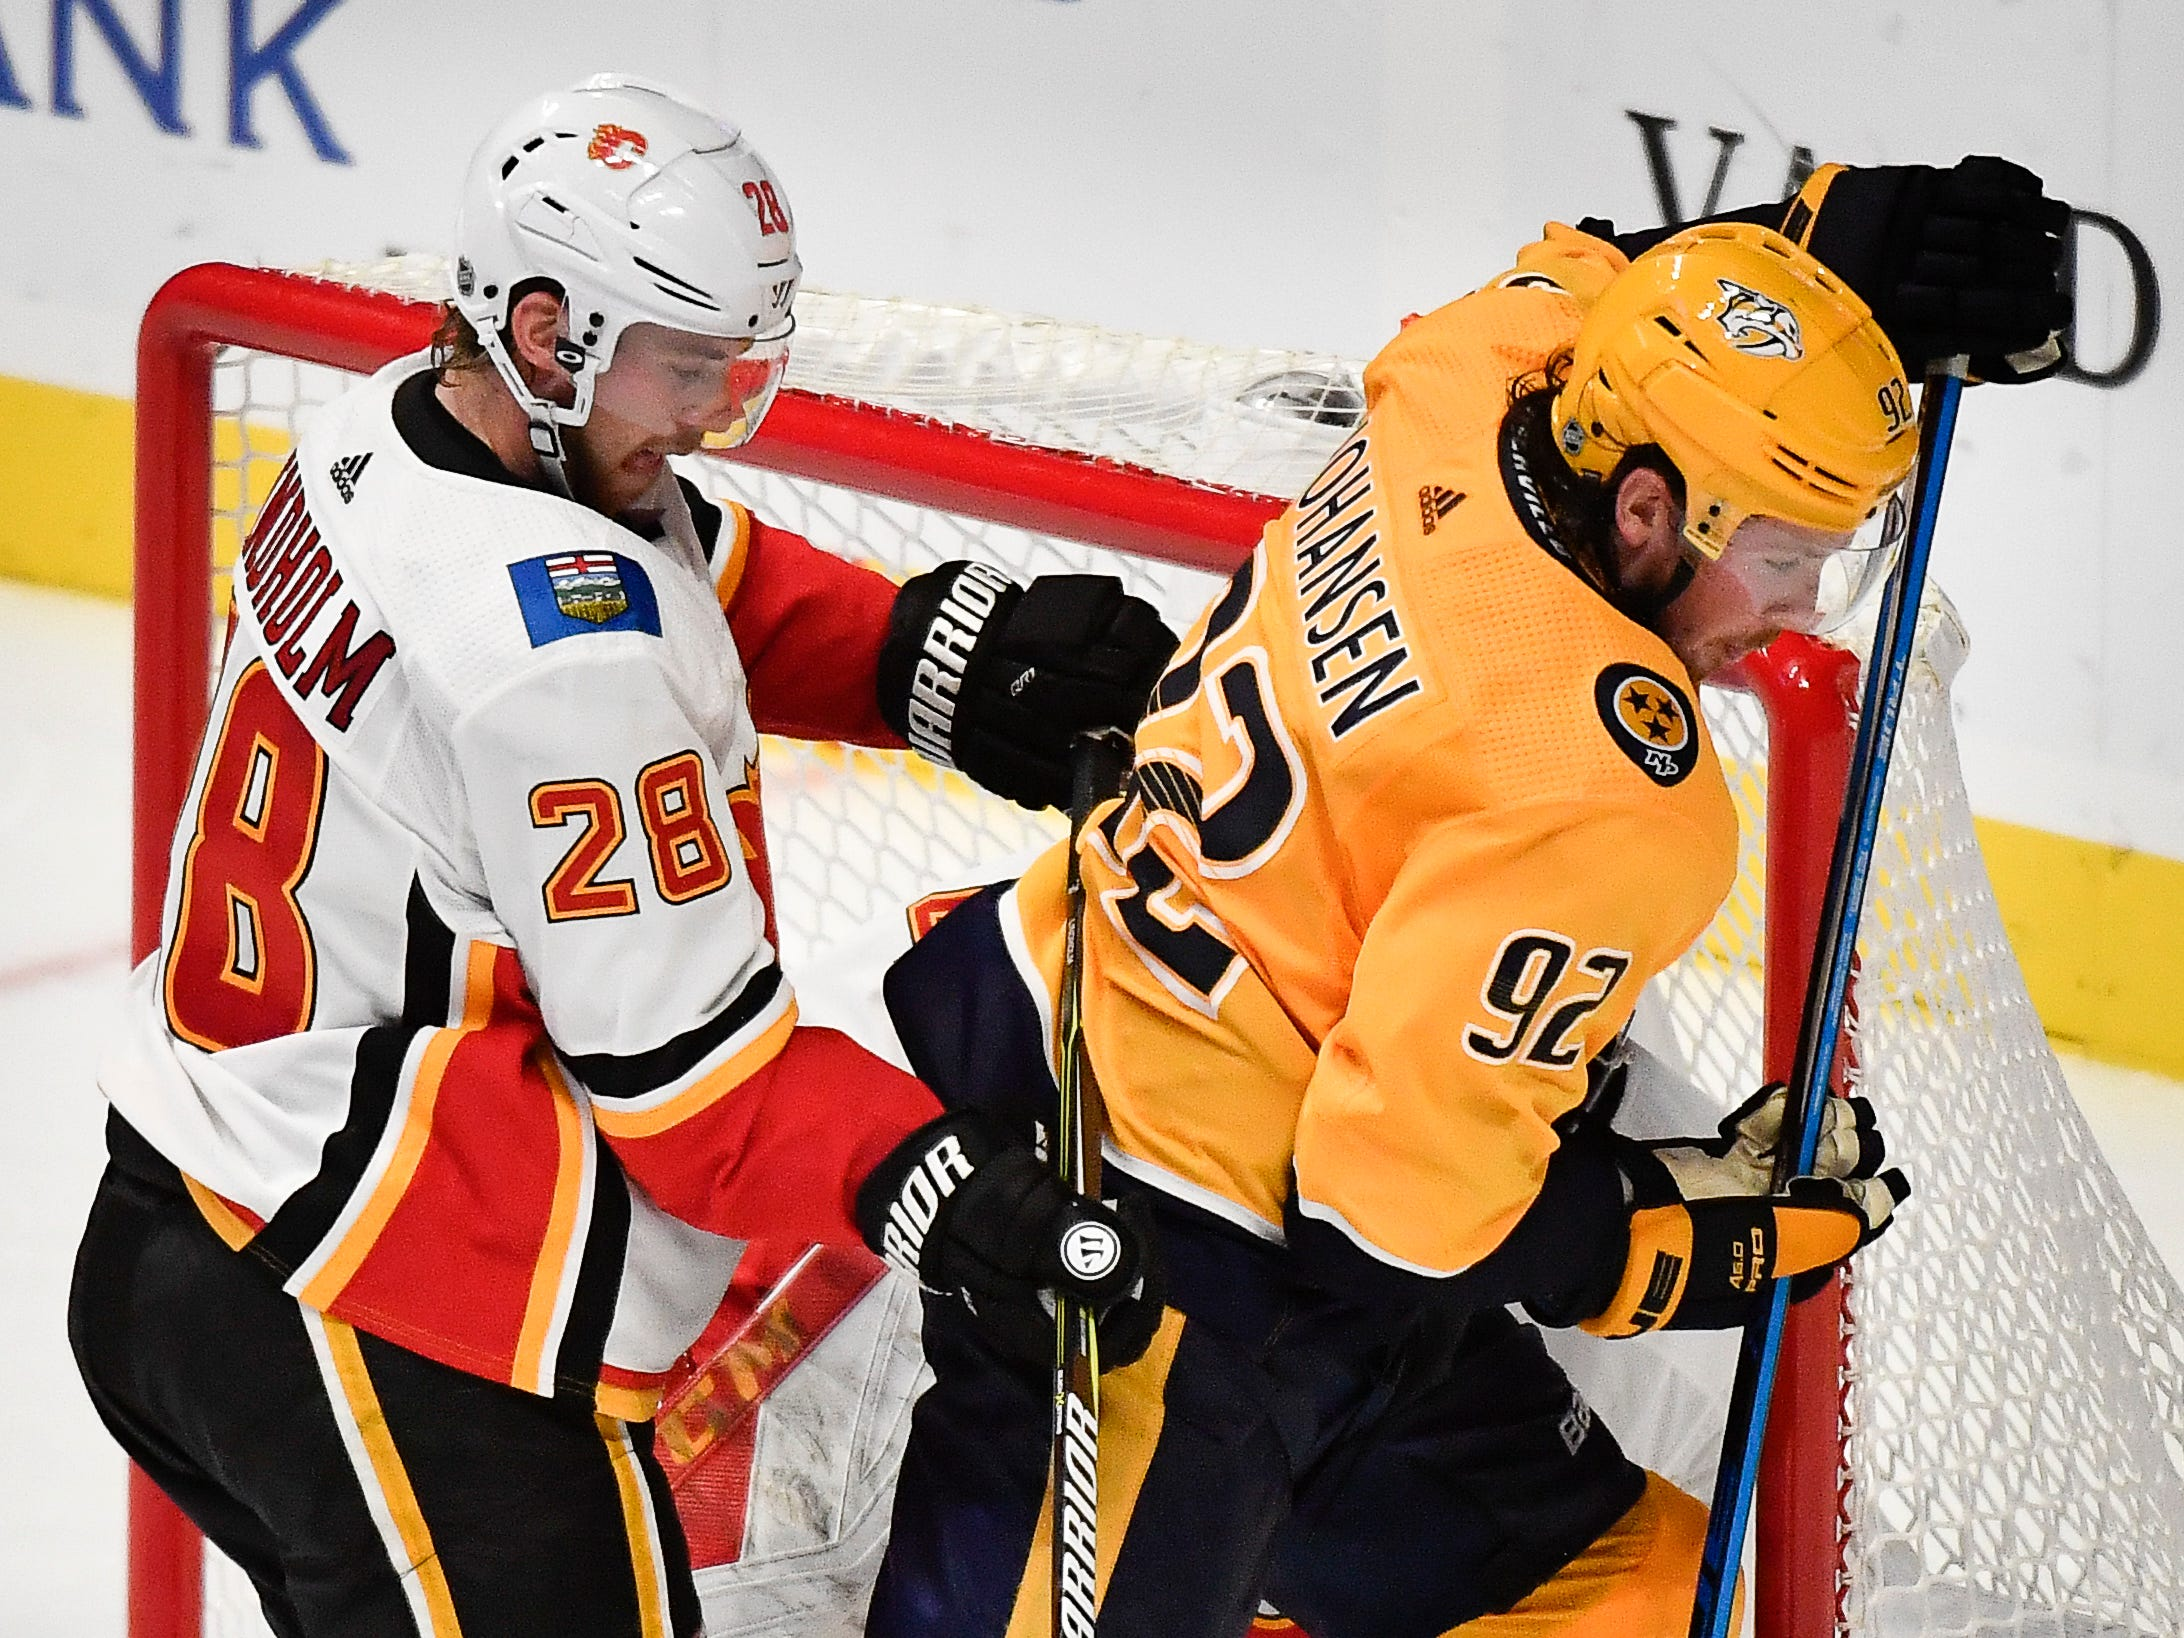 Nashville Predators center Ryan Johansen (92) has his shot on goal stopped by Calgary Flames goaltender Mike Smith (41) and center Elias Lindholm (28) during the third period at Bridgestone Arena Tuesday, Oct. 9, 2018, in Nashville, Tenn.